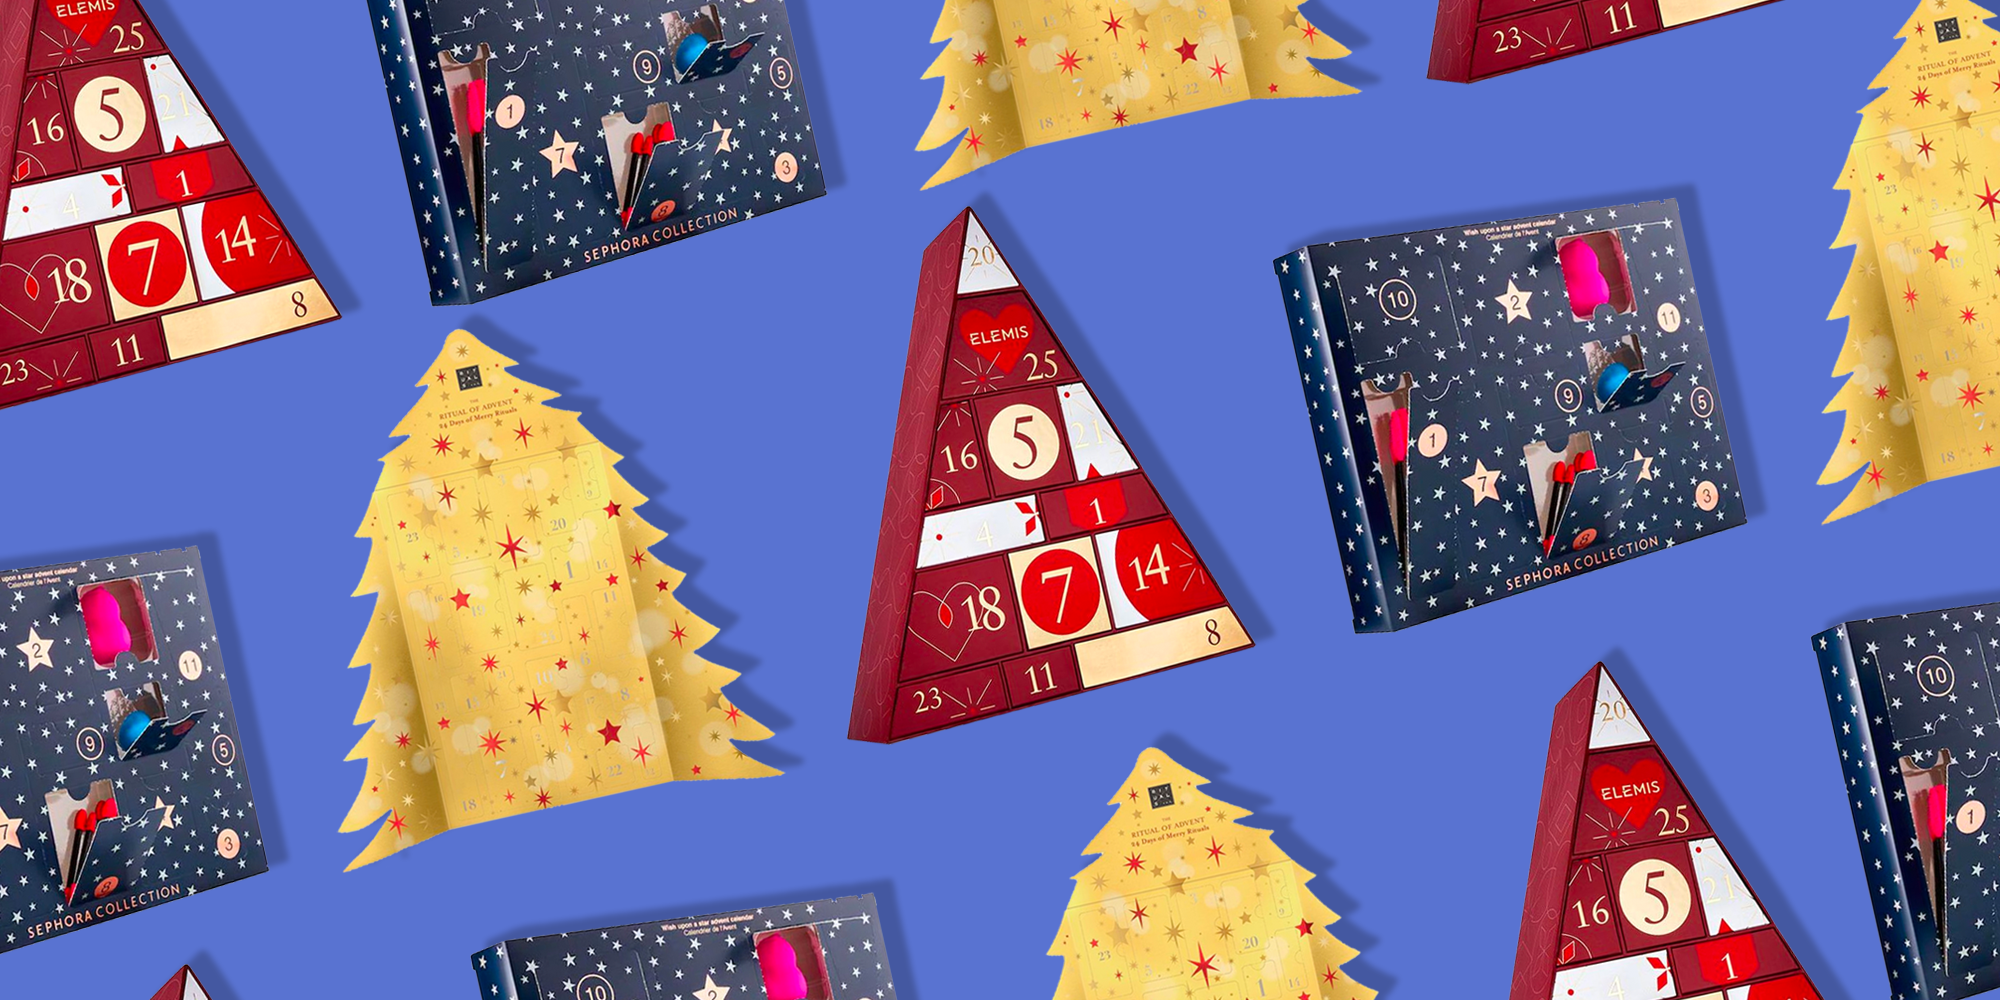 Countdown To 25 Days Of Christmas 2019.Best Beauty Advent Calendars For 2019 Makeup Advent Calendars